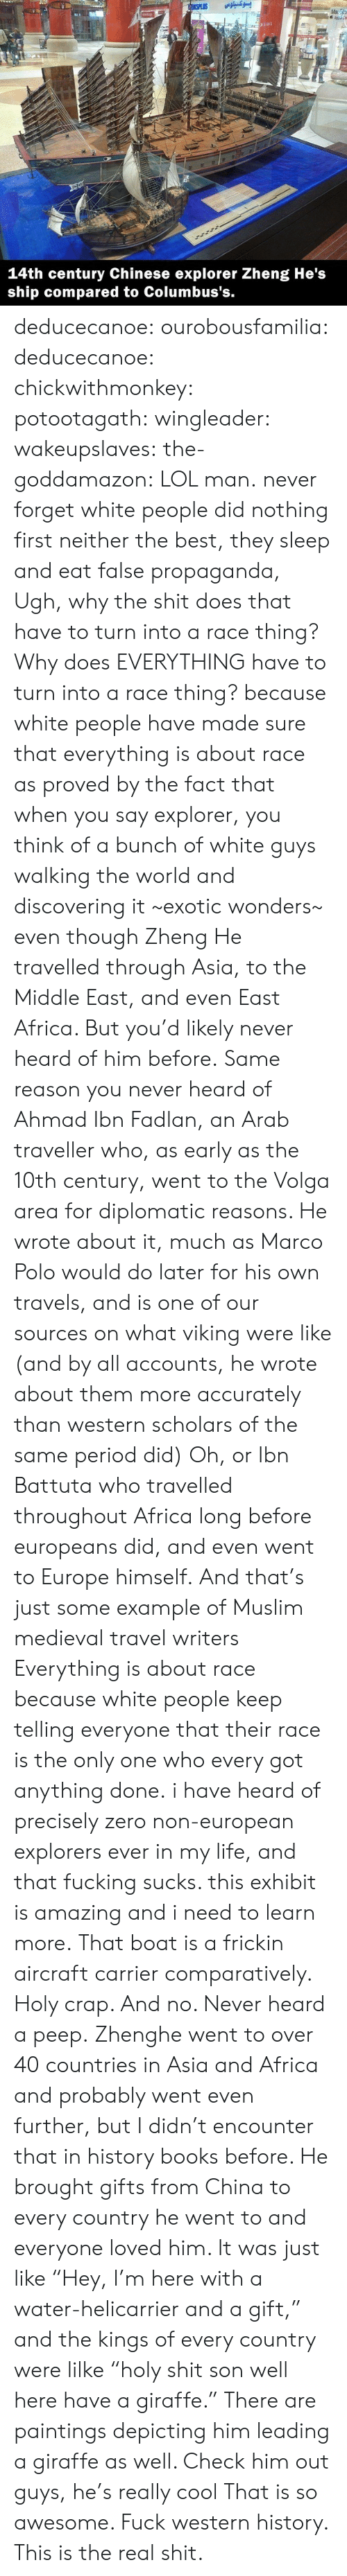 "Africa, Books, and Fucking: بوكسيلوس  SPLUS  Ma  A  83INT  14th century Chinese explorer Zheng He's  ship compared to Columbus's. deducecanoe: ourobousfamilia:  deducecanoe:  chickwithmonkey:  potootagath:  wingleader:  wakeupslaves:  the-goddamazon:  LOL man.  never forget white people did nothing first neither the best, they sleep and eat false propaganda,  Ugh, why the shit does that have to turn into a race thing? Why does EVERYTHING have to turn into a race thing?  because white people have made sure that everything is about race as proved by the fact that when you say explorer, you think of a bunch of white guys walking the world and discovering it ~exotic wonders~ even though Zheng He travelled through Asia, to the Middle East, and even East Africa. But you'd likely never heard of him before. Same reason you never heard of Ahmad Ibn Fadlan, an Arab traveller who, as early as the 10th century, went to the Volga area for diplomatic reasons. He wrote about it, much as Marco Polo would do later for his own travels, and is one of our sources on what viking were like (and by all accounts, he wrote about them more accurately than western scholars of the same period did) Oh, or Ibn Battuta who travelled throughout Africa long before europeans did, and even went to Europe himself. And that's just some example of Muslim medieval travel writers Everything is about race because white people keep telling everyone that their race is the only one who every got anything done.  i have heard of precisely zero non-european explorers ever in my life, and that fucking sucks. this exhibit is amazing and i need to learn more.  That boat is a frickin aircraft carrier comparatively. Holy crap. And no. Never heard a peep.  Zhenghe went to over 40 countries in Asia and Africa and probably went even further, but I didn't encounter that in history books before. He brought gifts from China to every country he went to and everyone loved him. It was just like ""Hey, I'm here with a water-helicarrier and a gift,"" and the kings of every country were lilke ""holy shit son well here have a giraffe."" There are paintings depicting him leading a giraffe as well. Check him out guys, he's really cool  That is so awesome. Fuck western history. This is the real shit."